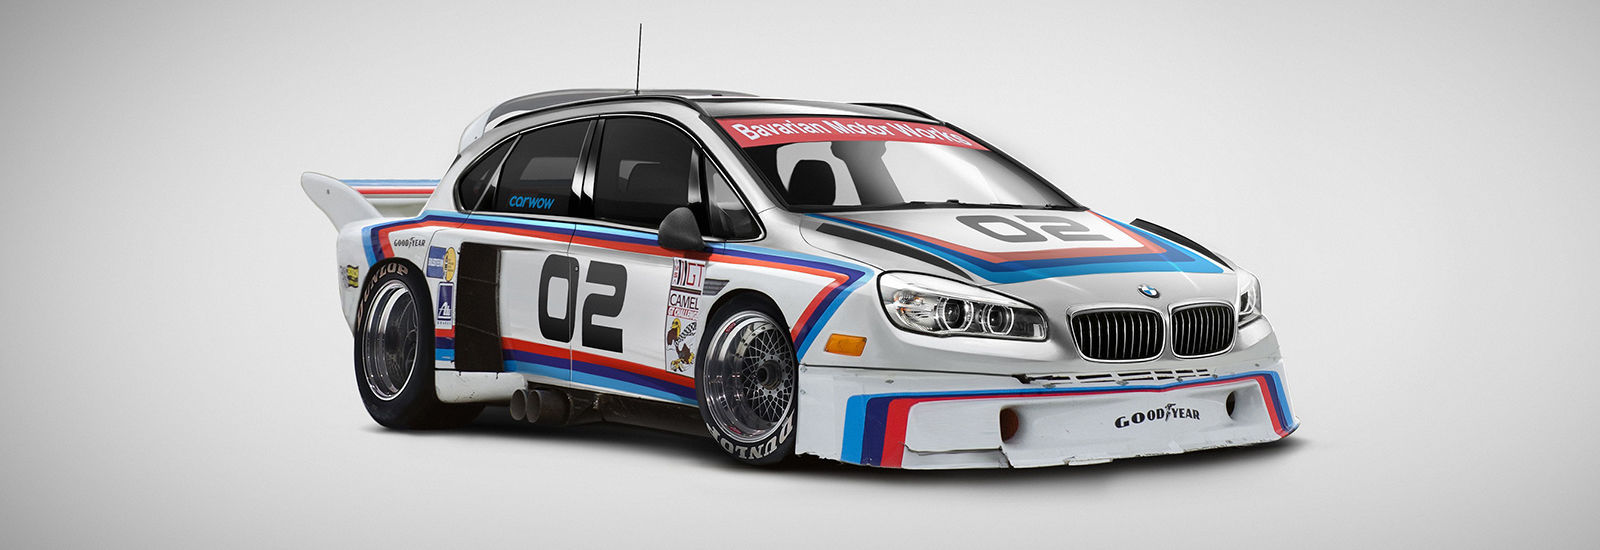 G-carwow-BMW-2-Series-CSL-Batmobile-Active-Tourer-cropped